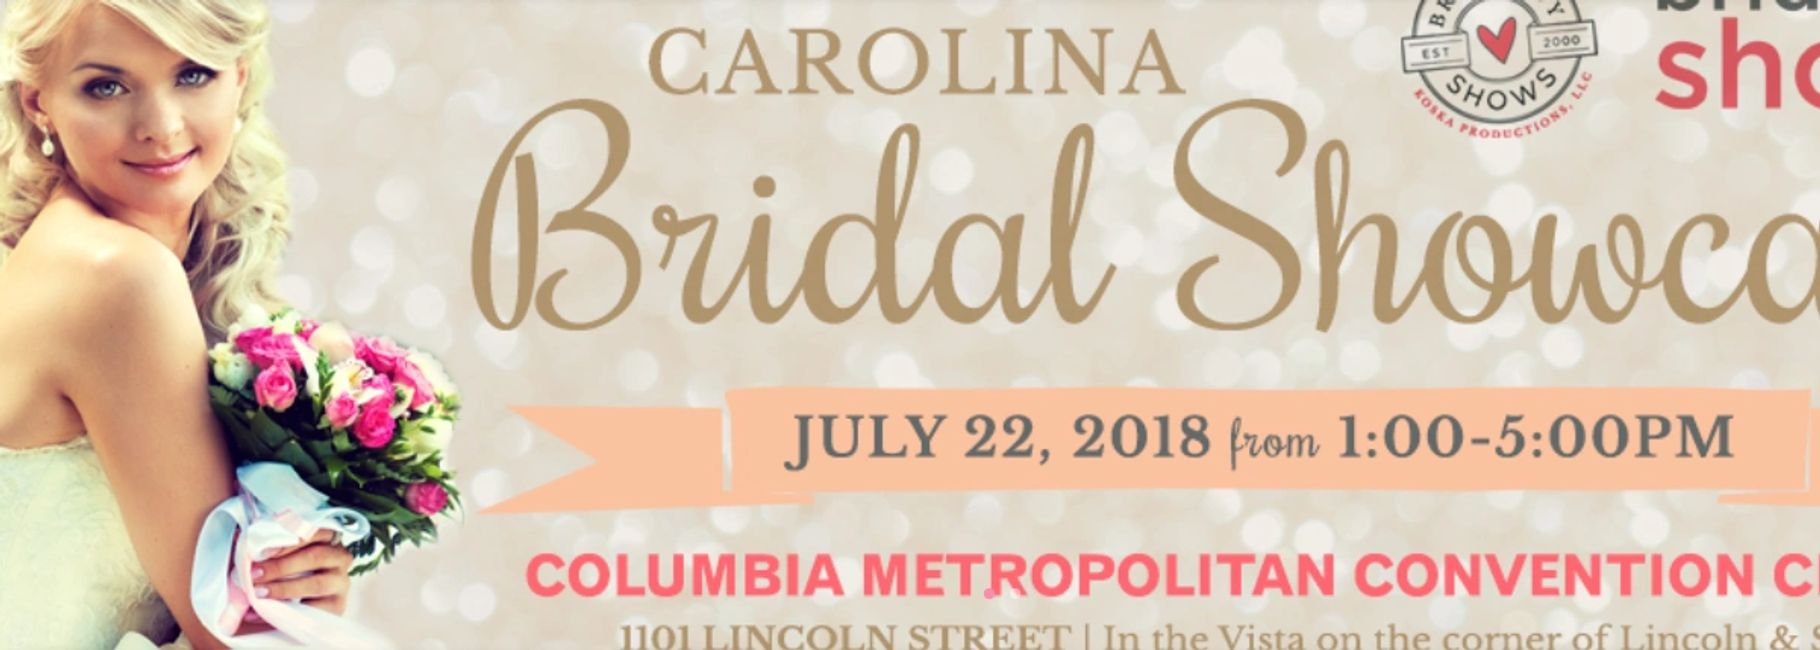 Carolina Bridal Showcase